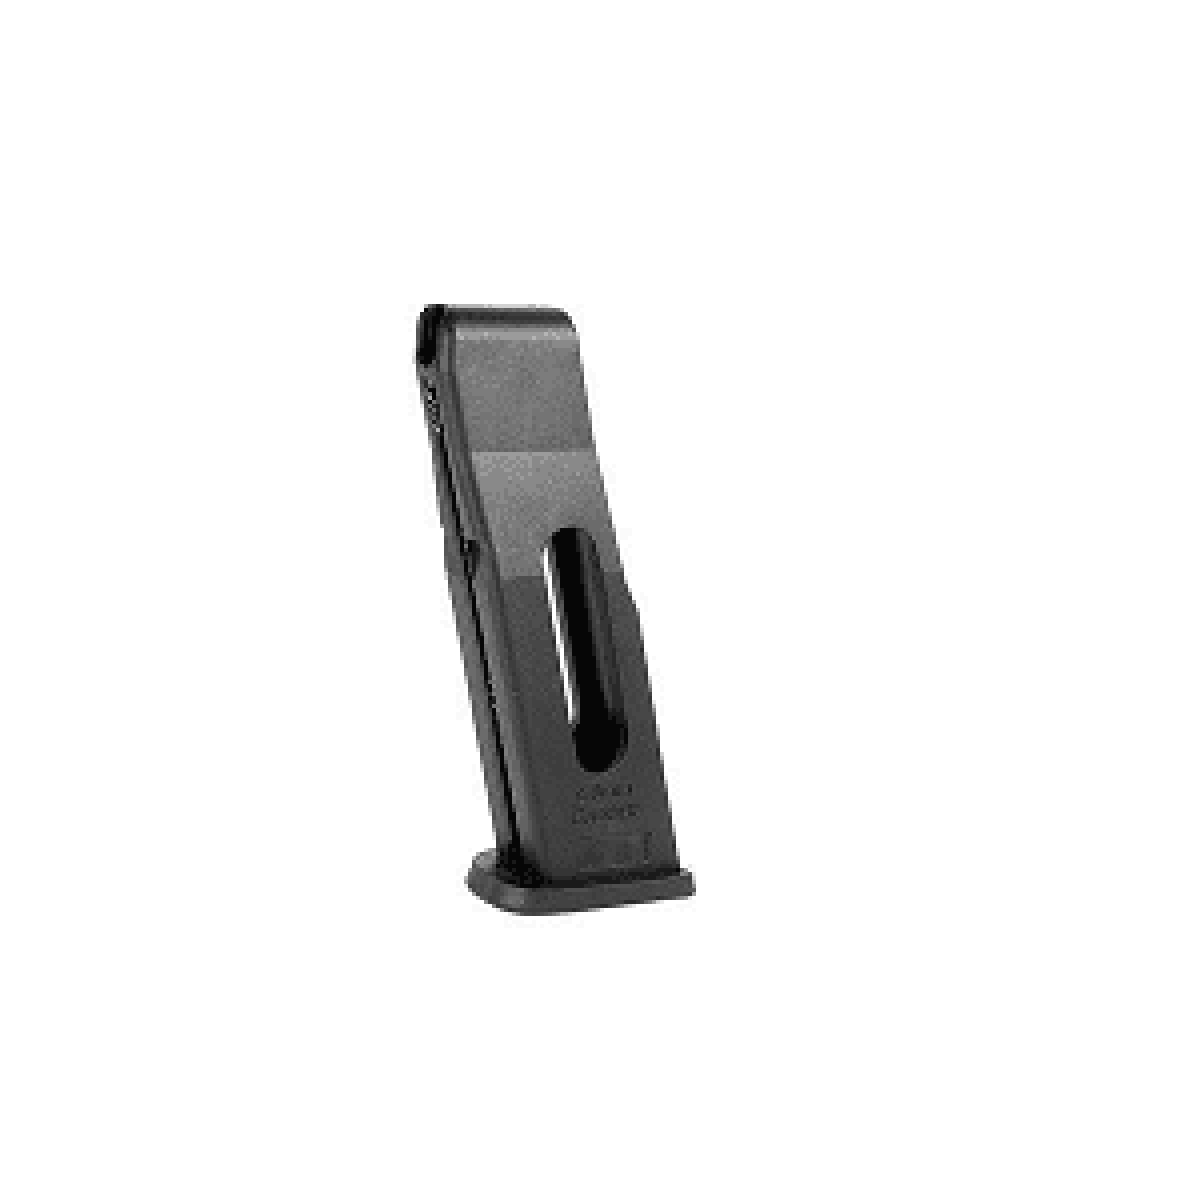 HK USP CO2 MAGAZINE PLASTIC